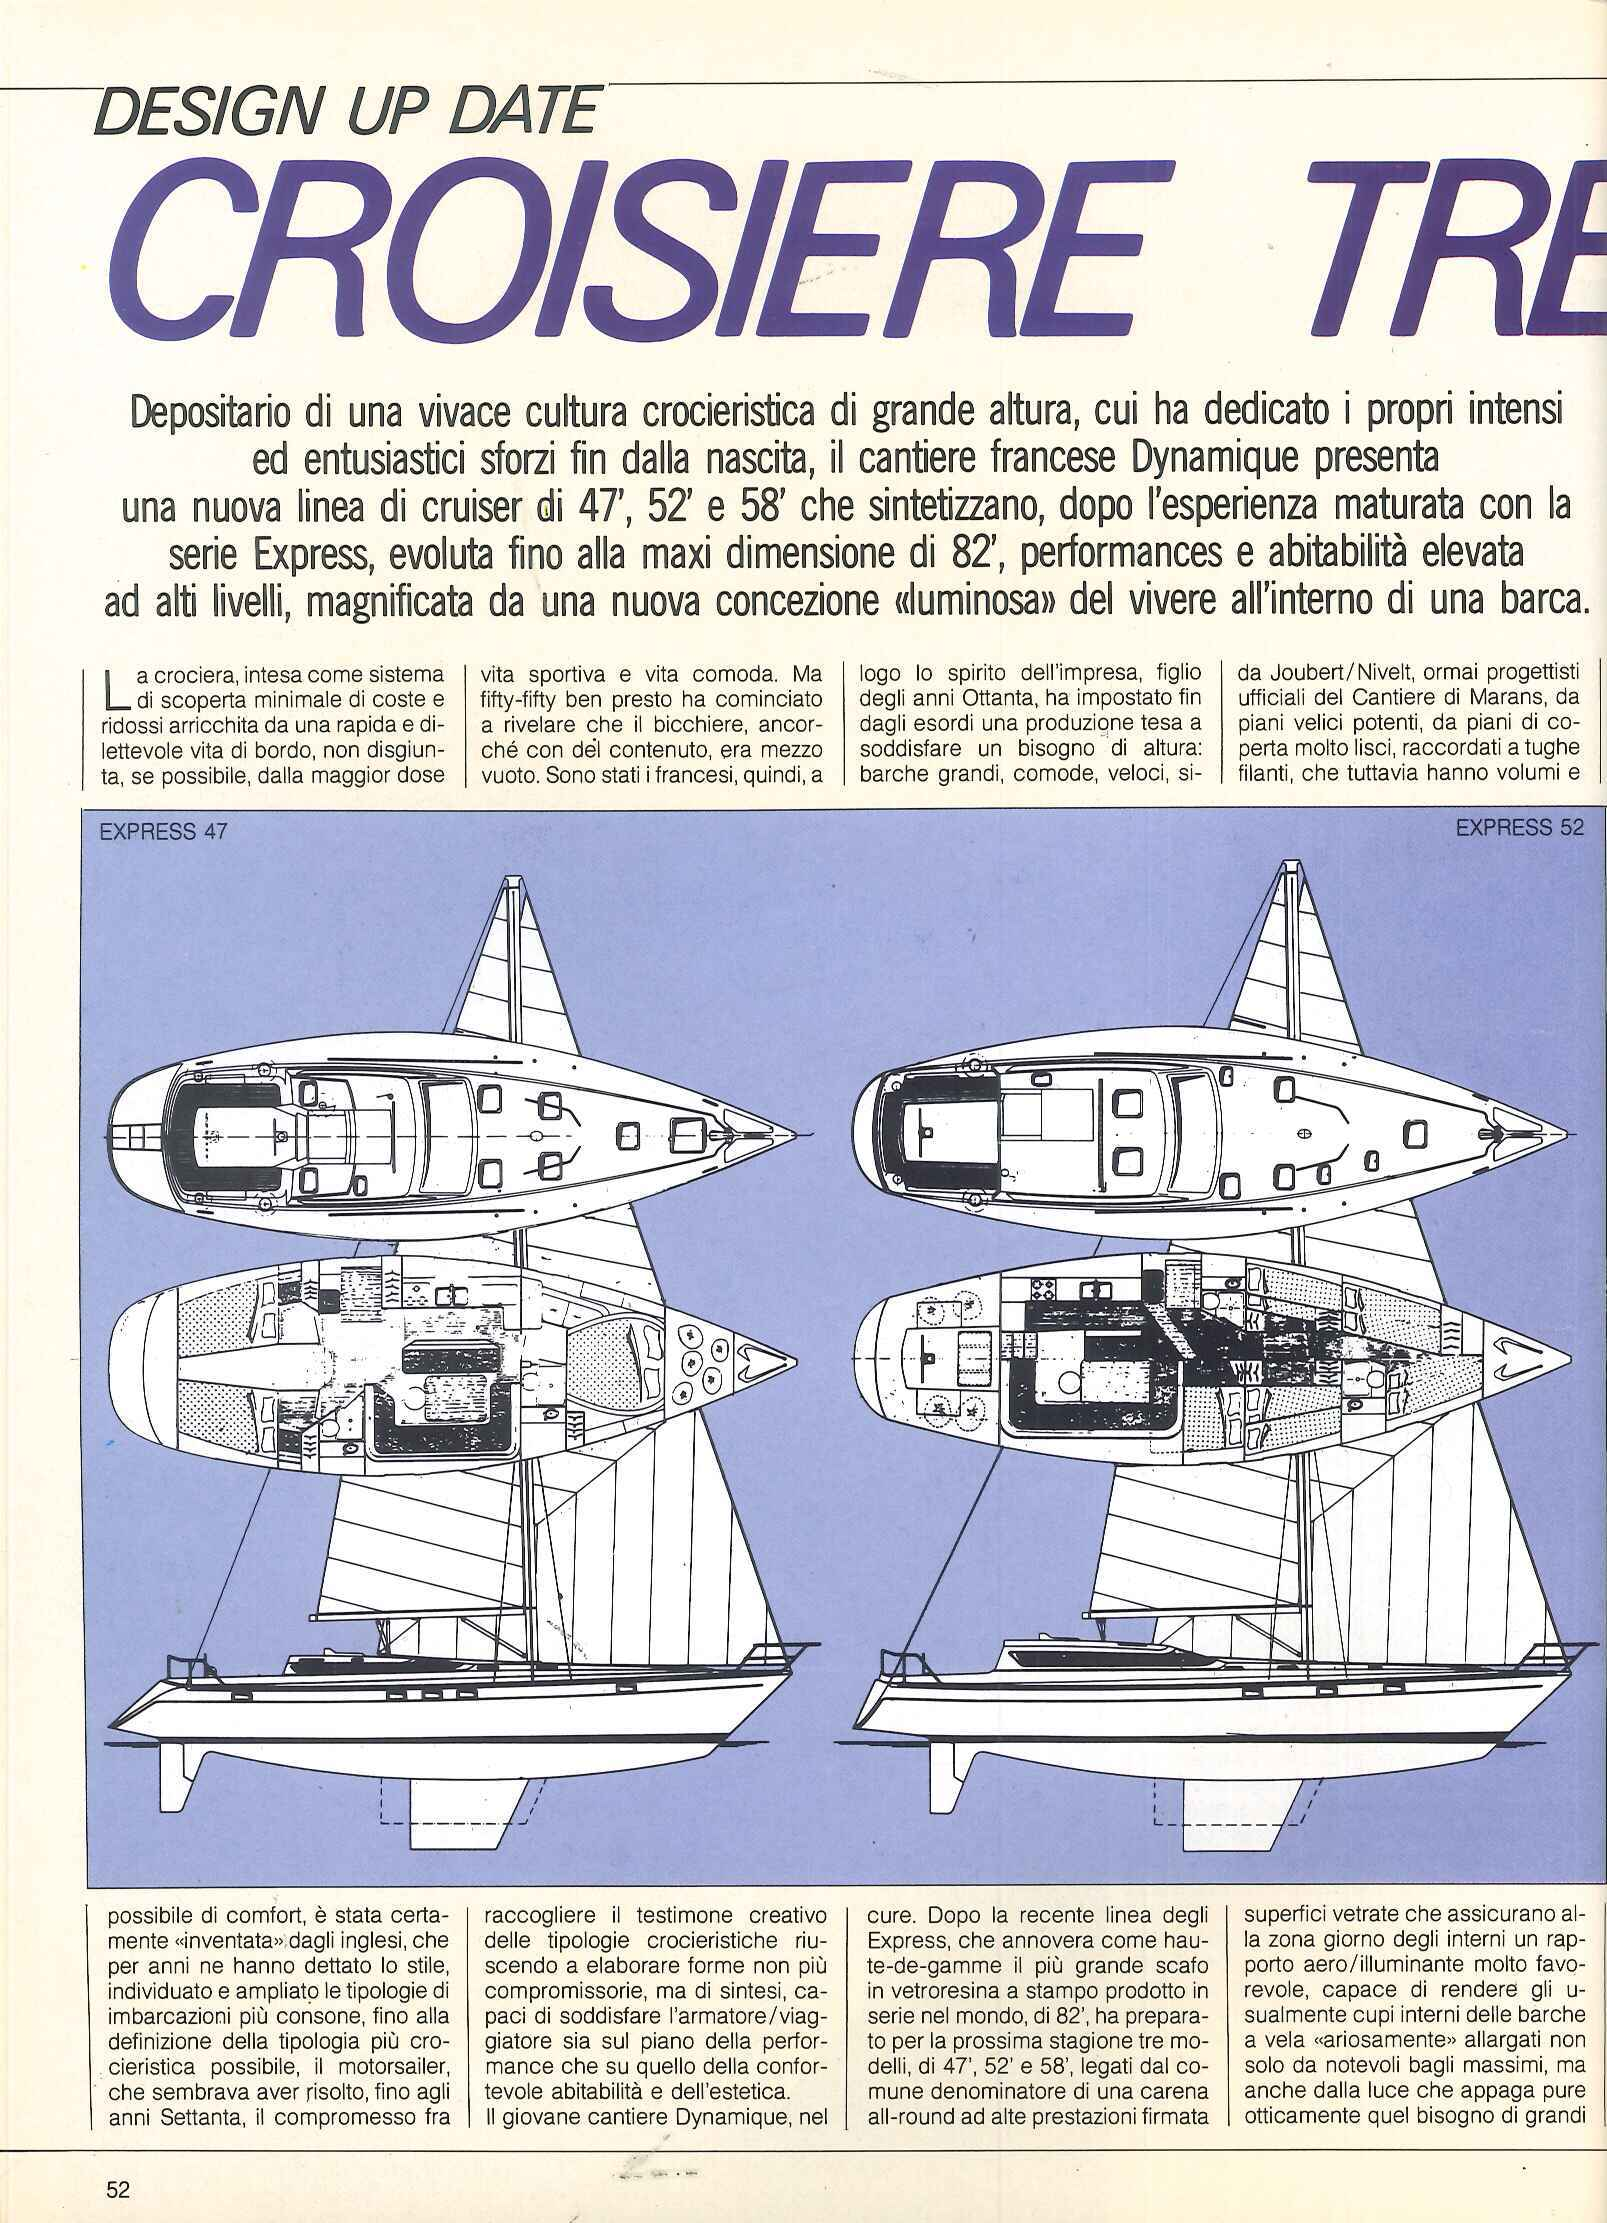 1986 09 PRESS CROSIERE TRES DYNAMIQUE Uomo Mare n° 101 (14).jpg